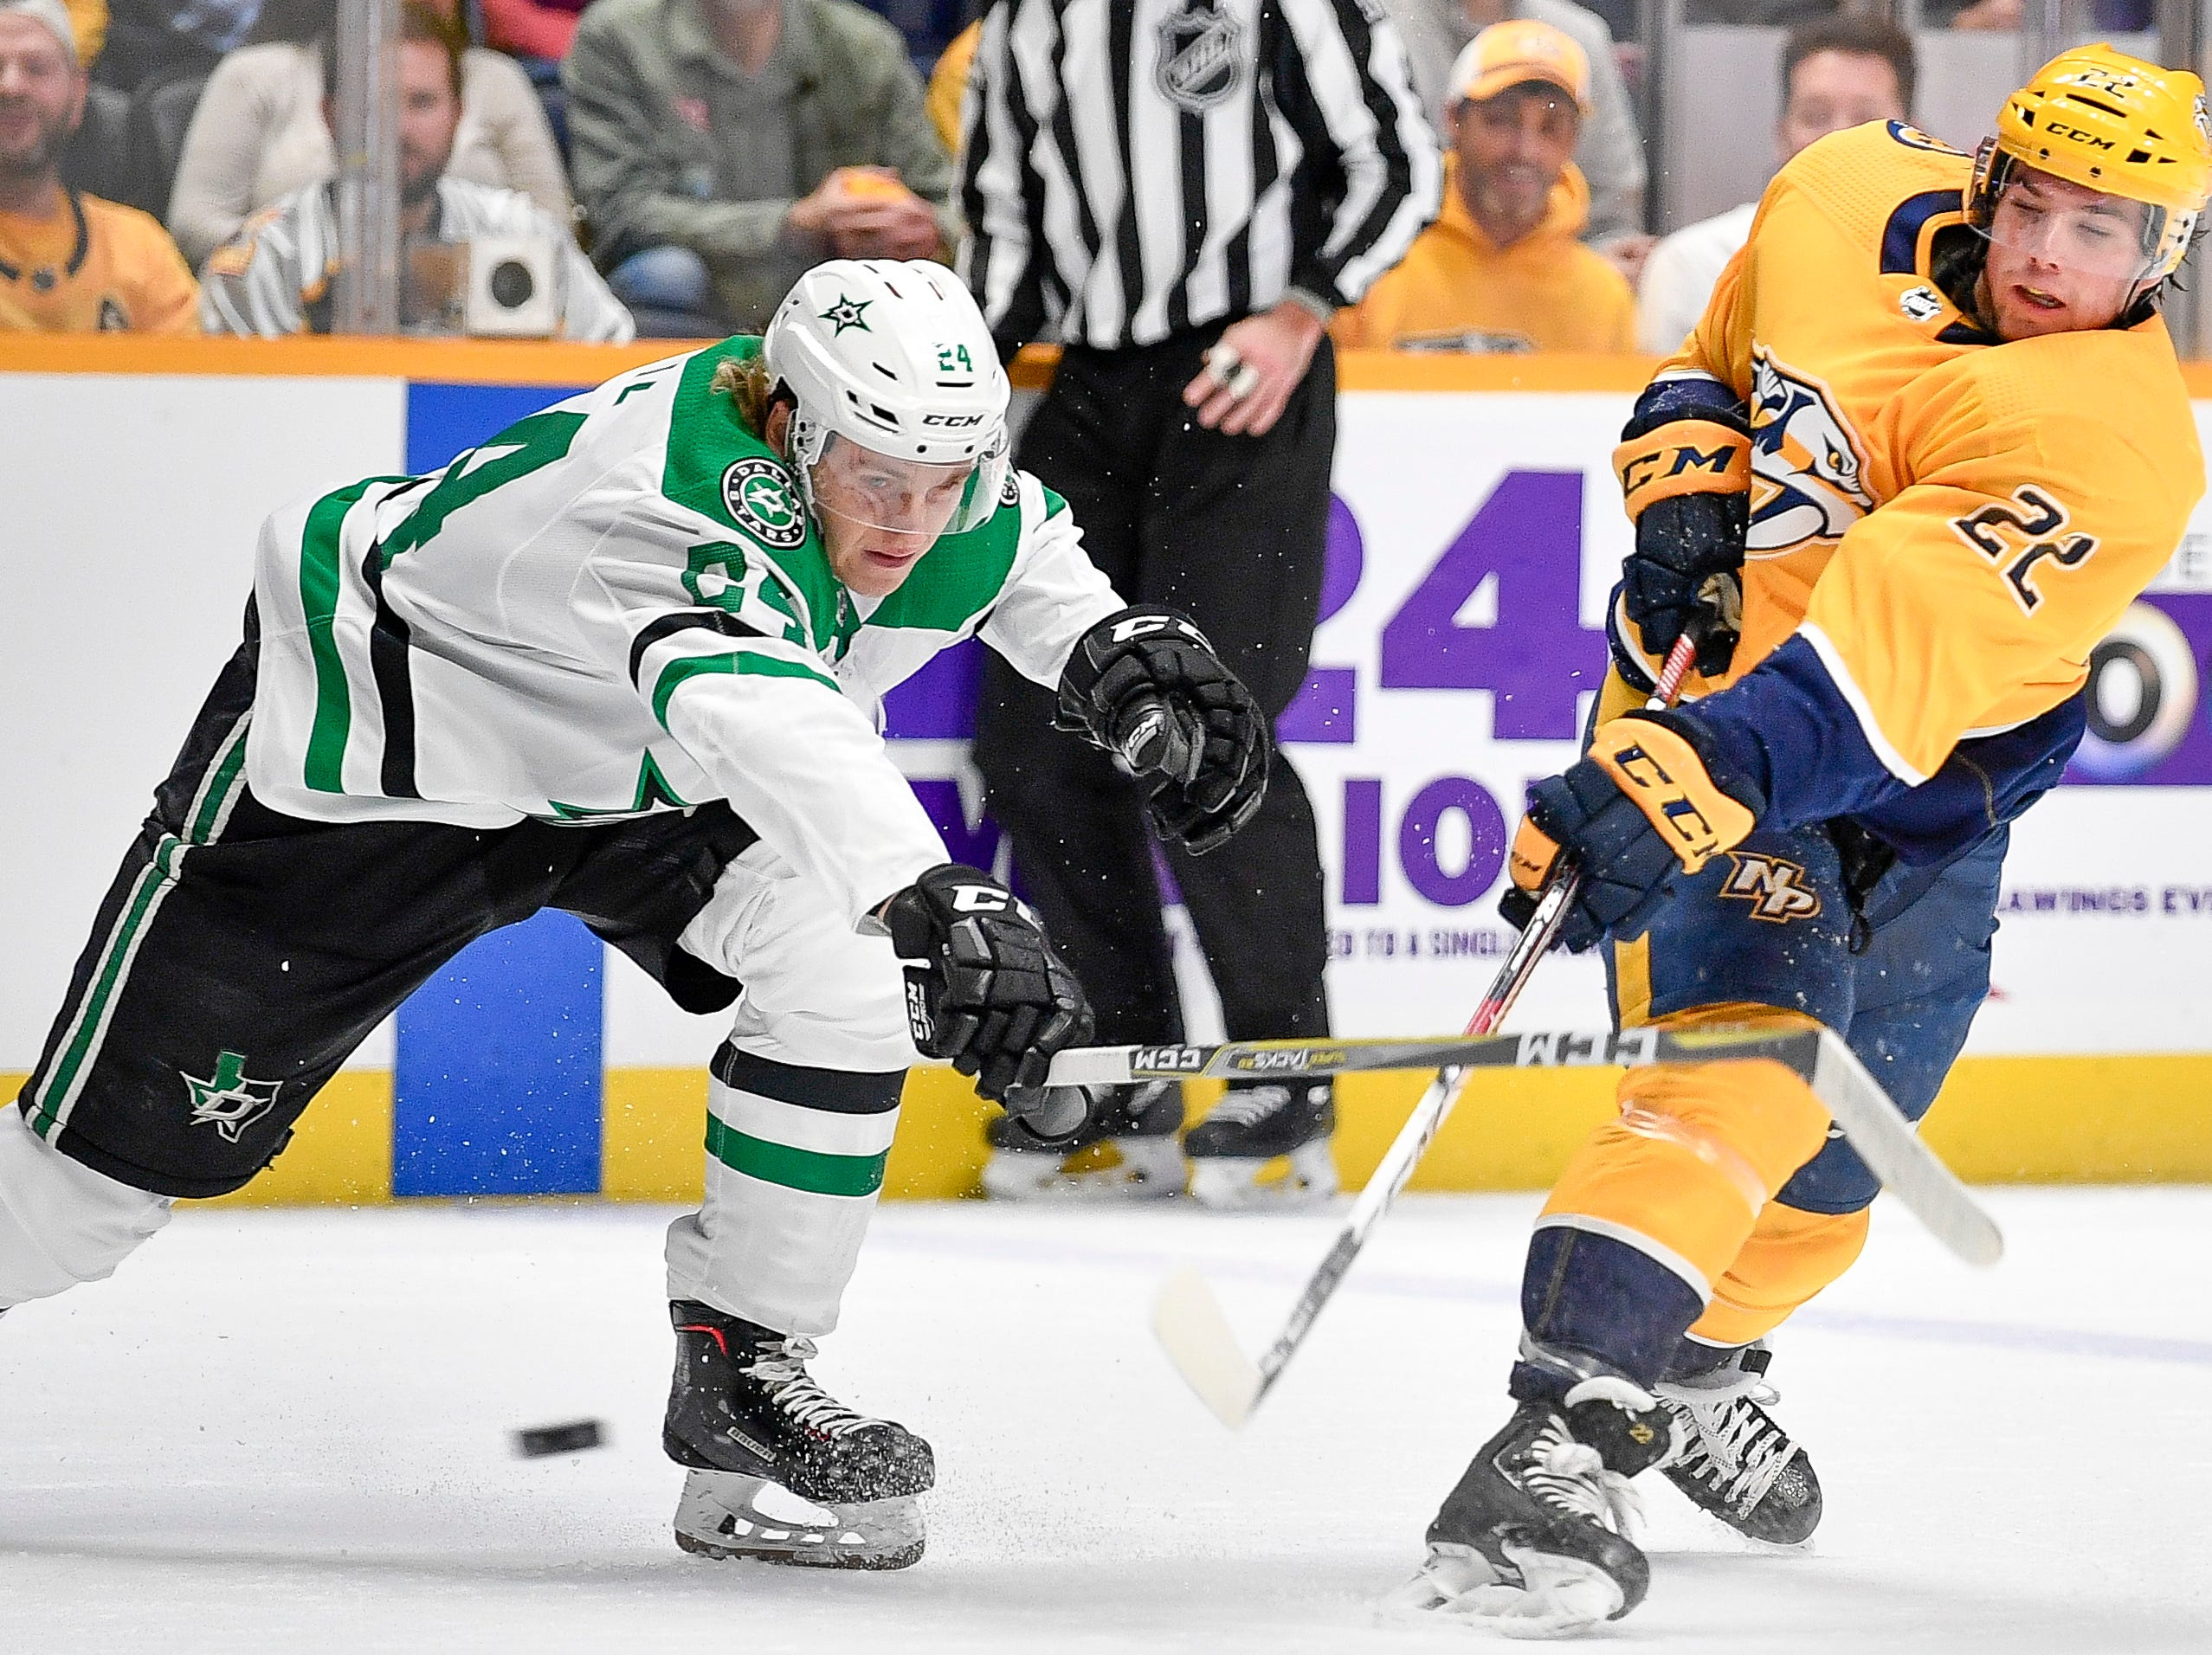 Nashville Predators left wing Kevin Fiala (22) shoots past Dallas Stars left wing Roope Hintz (24) during the first period at Bridgestone Arena in Nashville, Tenn., Thursday, Feb. 7, 2019.